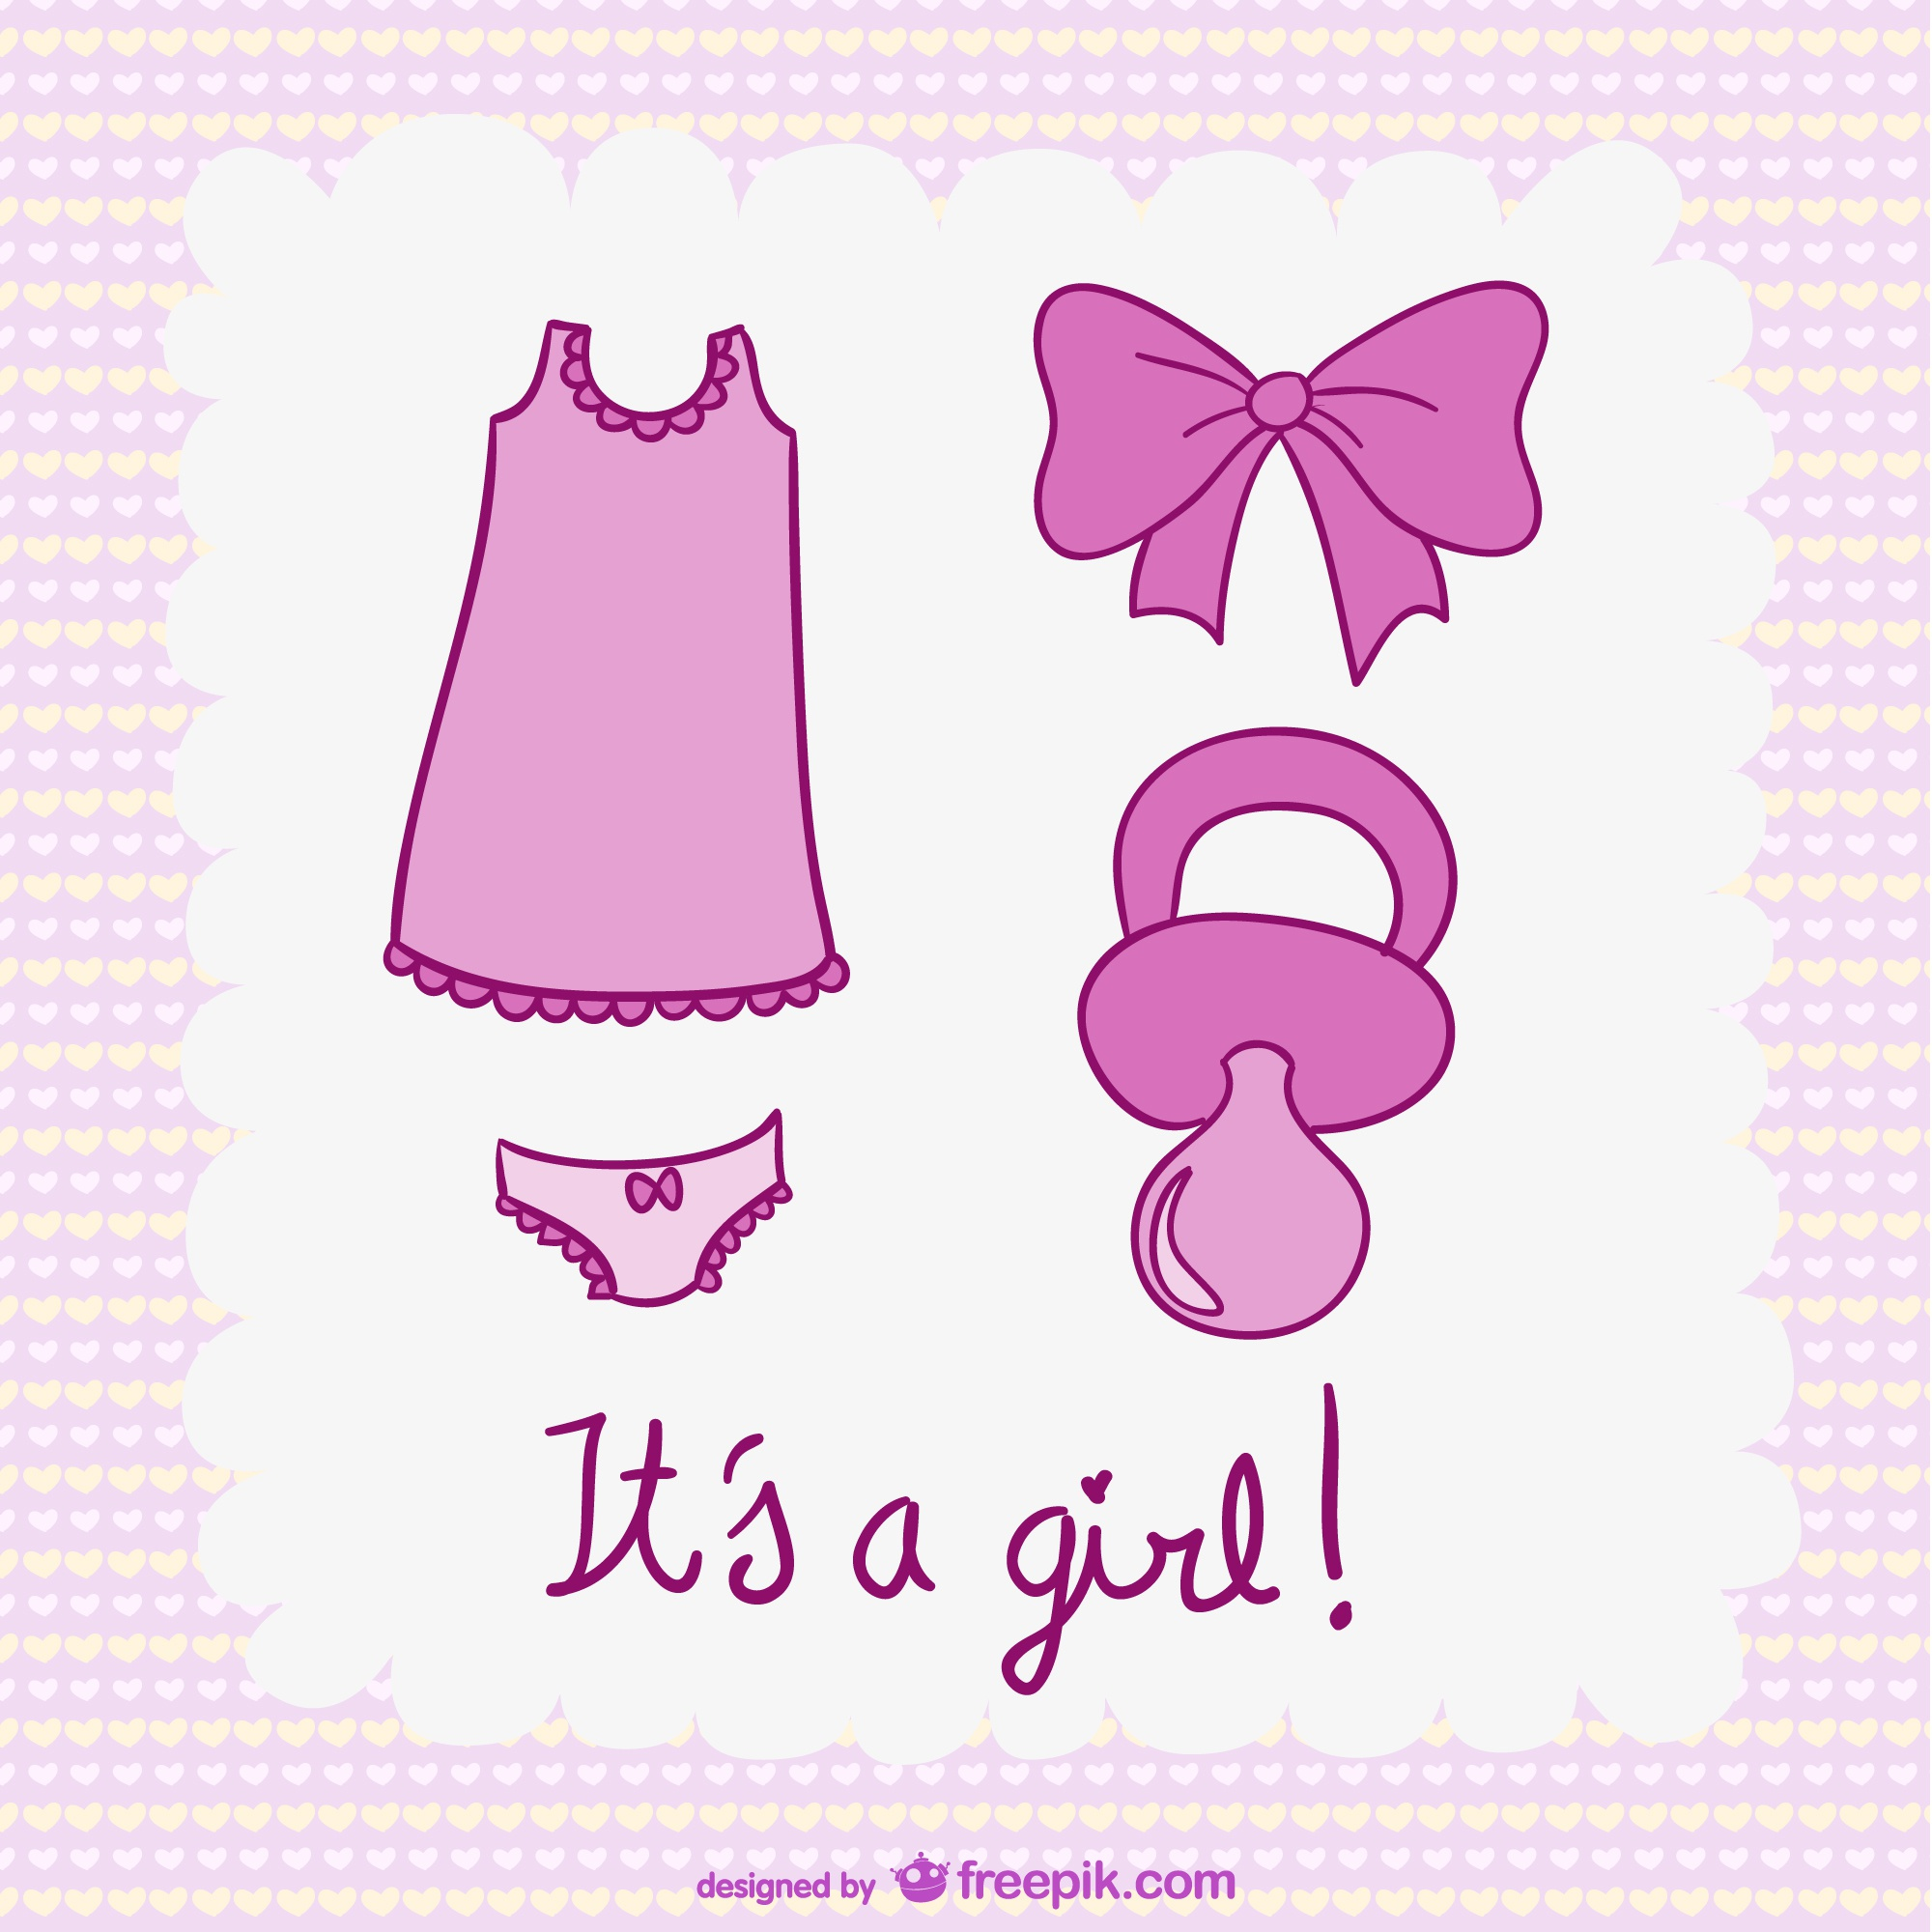 Its a girl illustrations